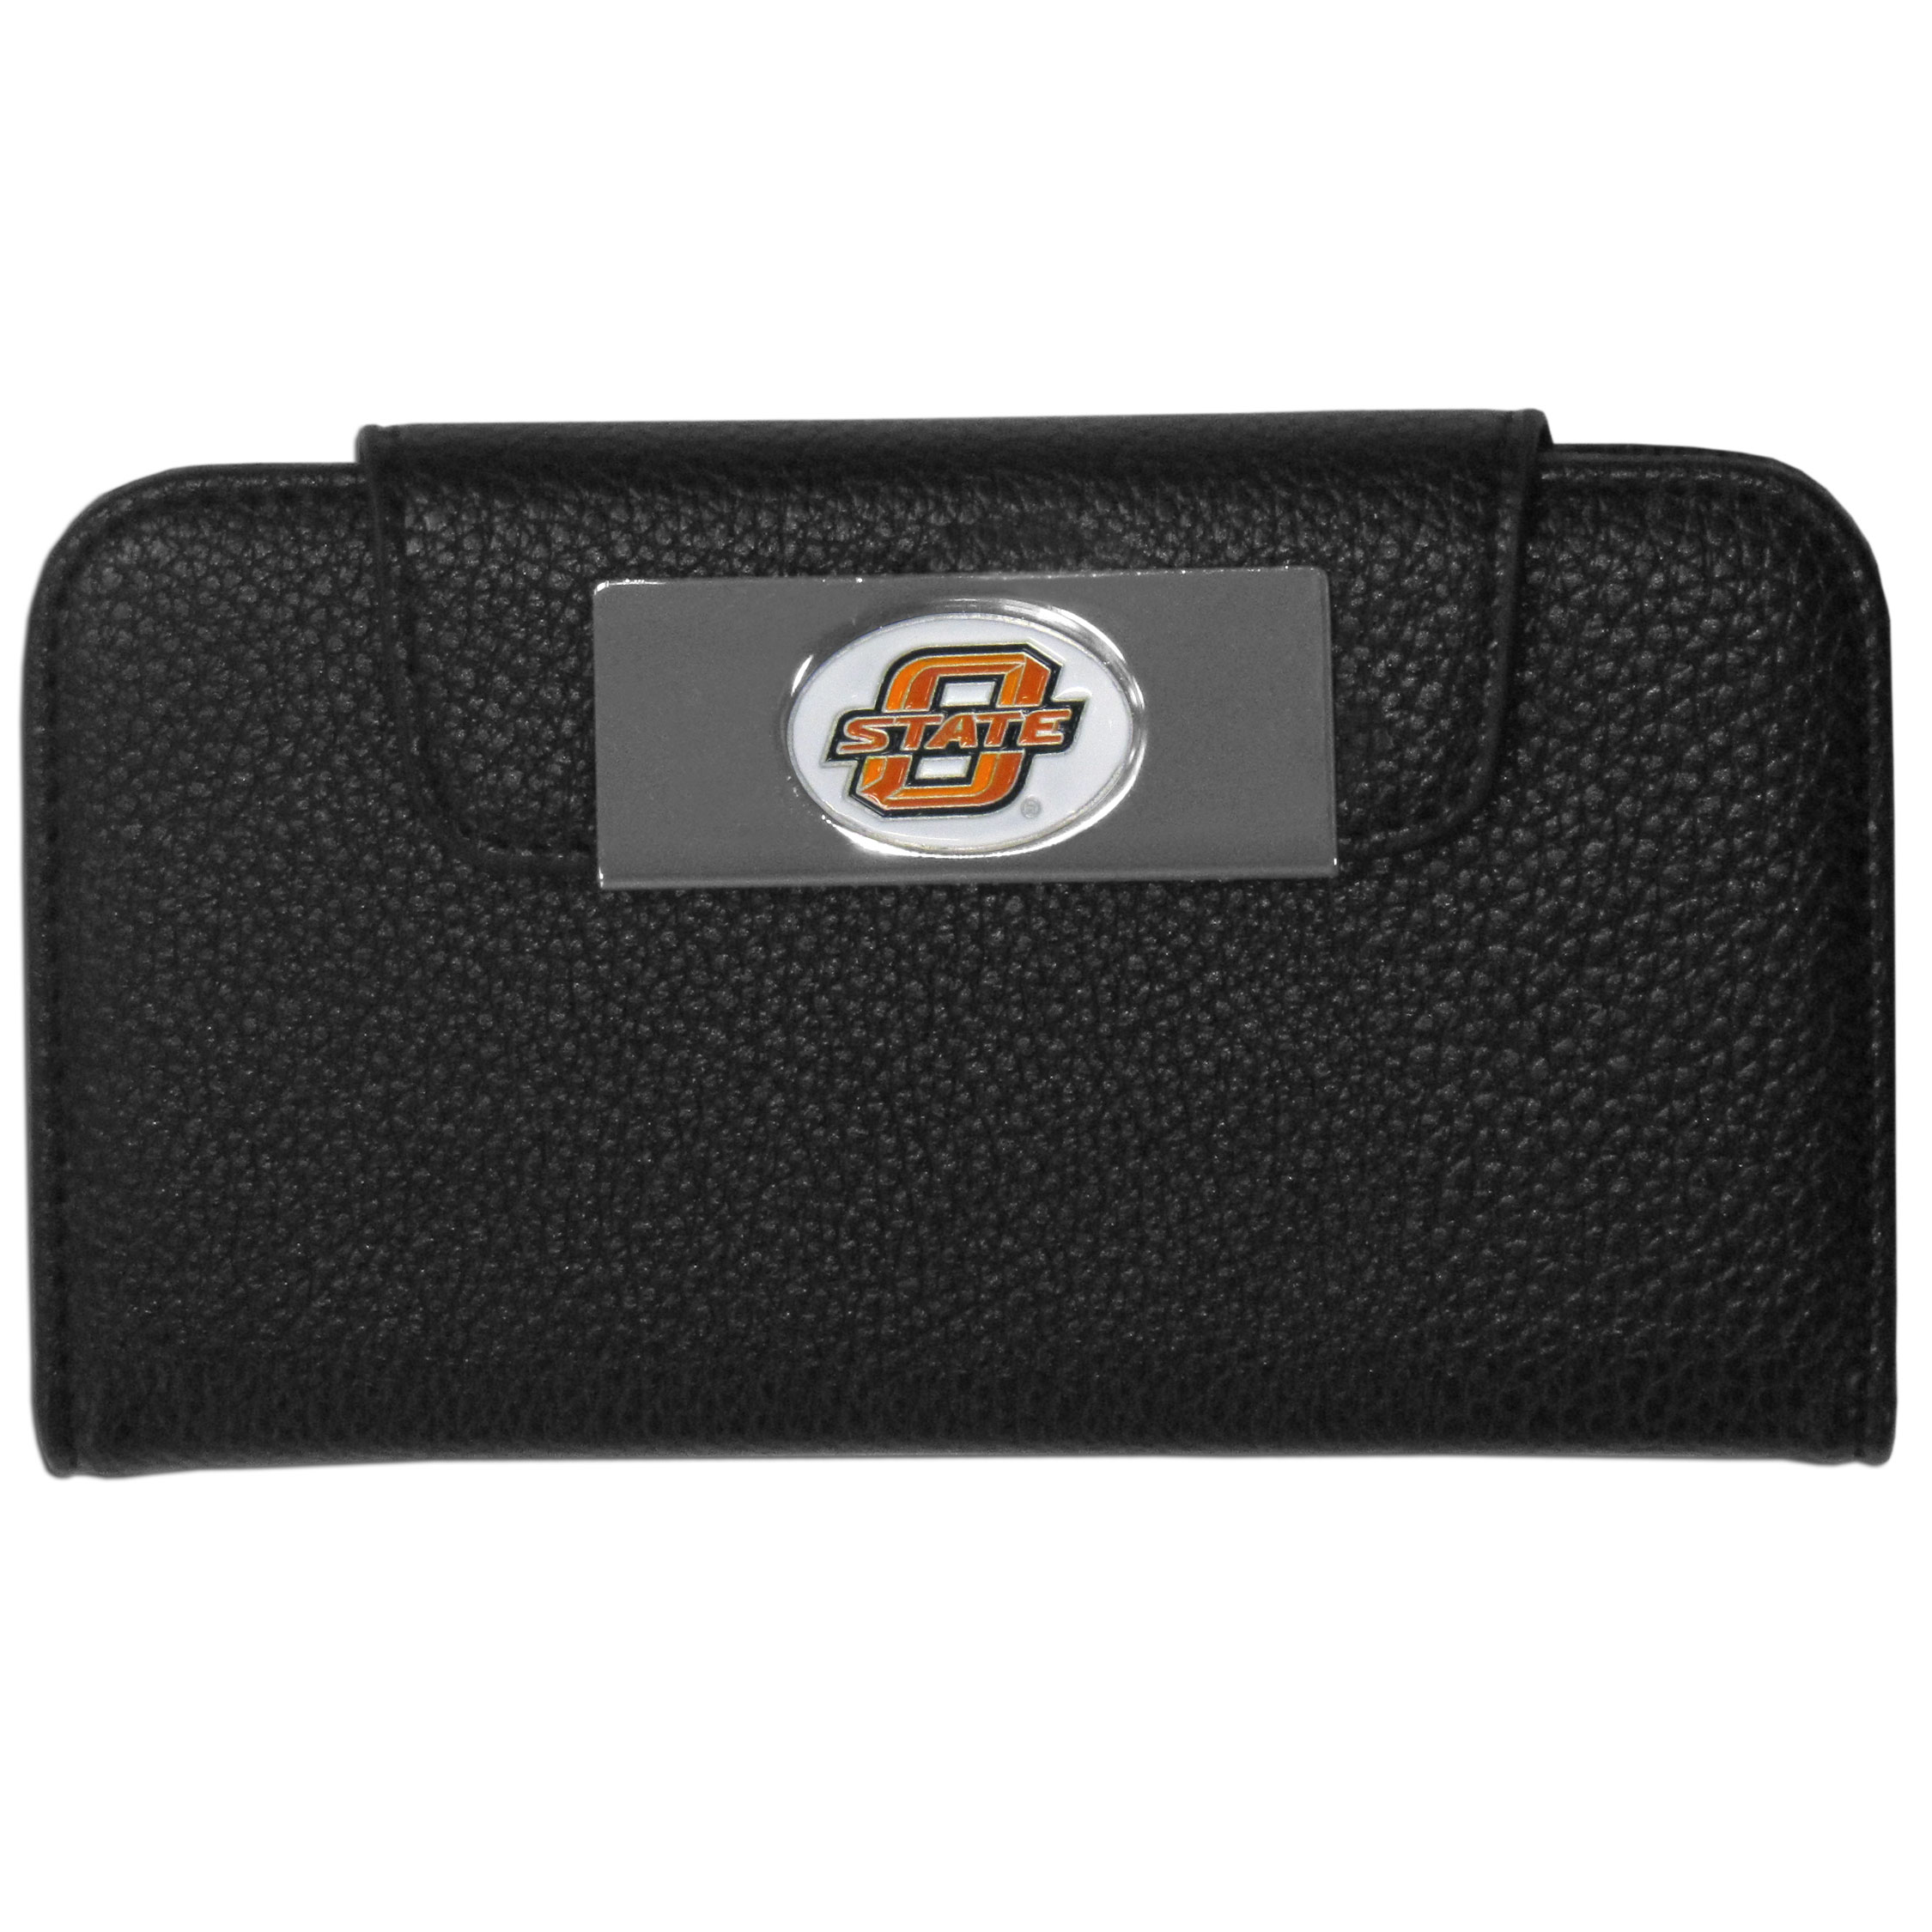 Oklahoma State Cowboys iPhone 5/5S Wallet Case - This new & wildly popular case is ideal for those who like to travel light! The stylish case has an inner hard shell that securely holds your phone while allowing complete access to the phone's functionality. The flip cover has slots for credit cards, business cards and identification. The magnetic flip cover has a metal Oklahoma State Cowboys emblem on a high polish chrome backing. Fits the iPhone 5/5S